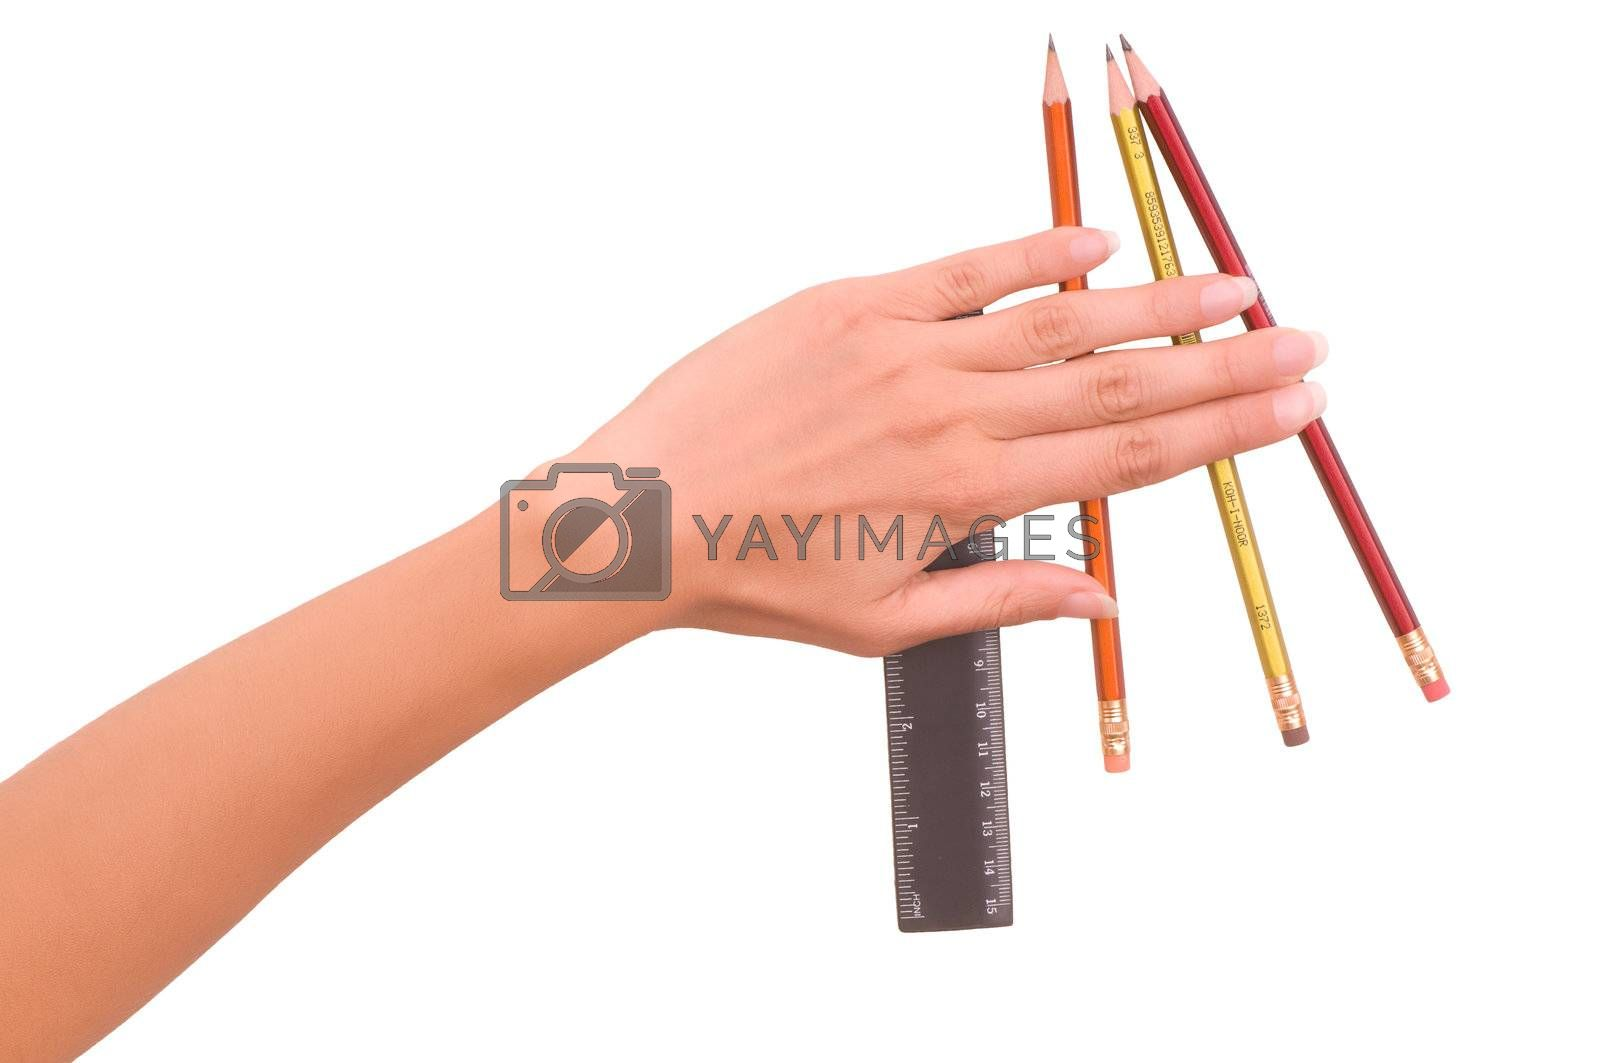 Pencils and rule for drawing